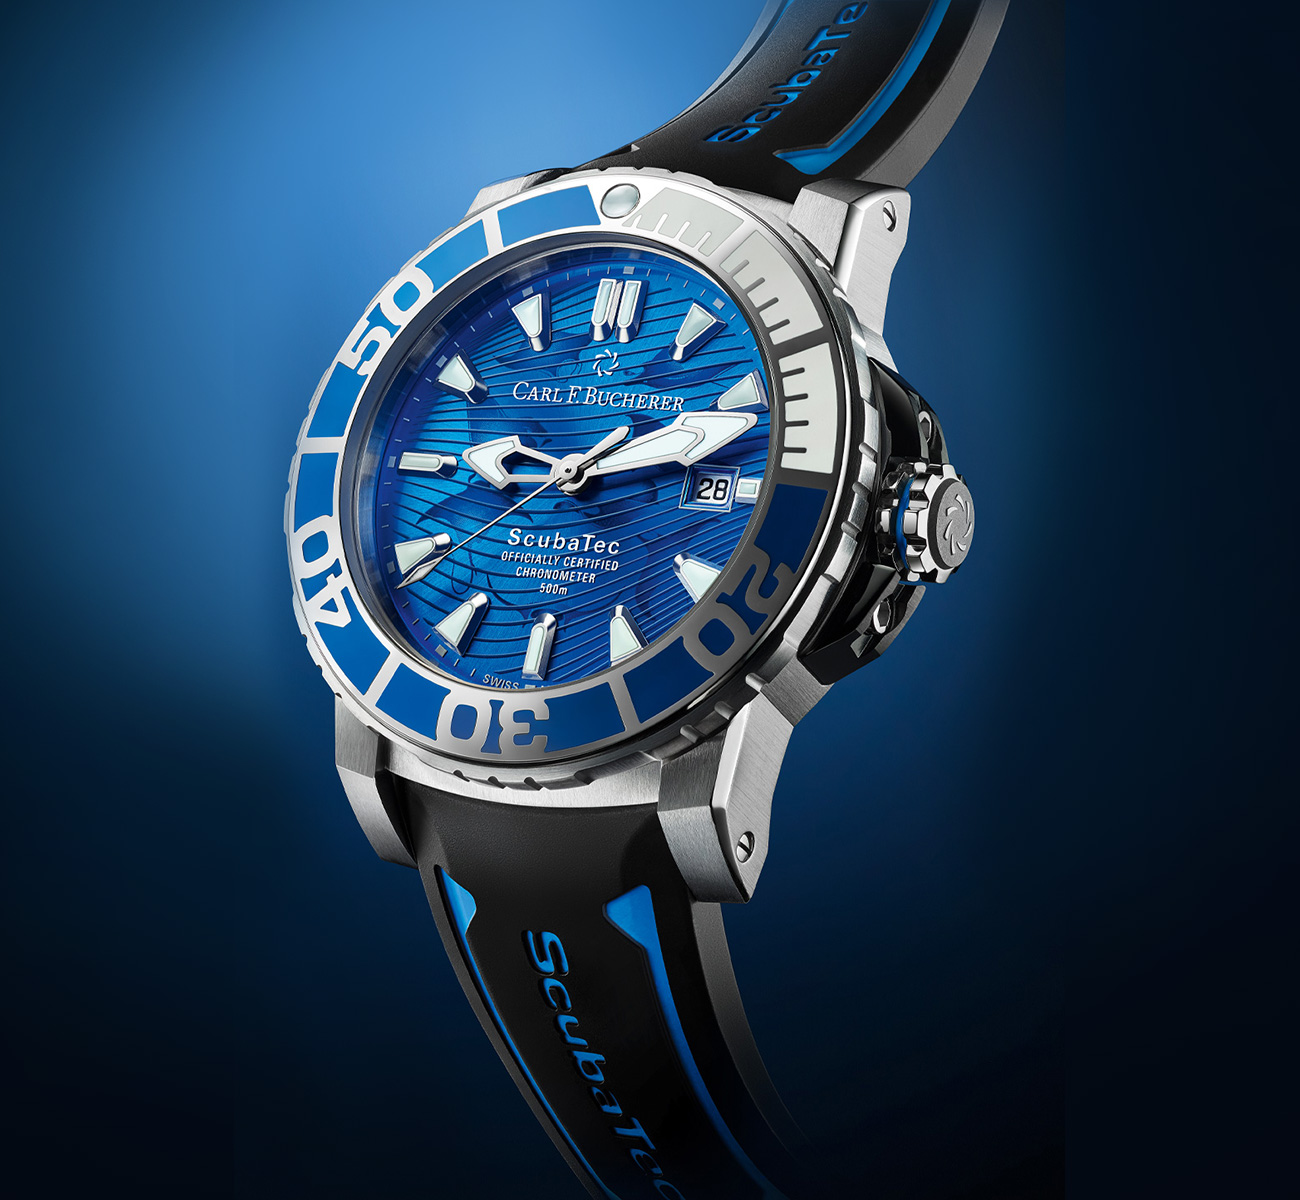 patravi scubatec only watch